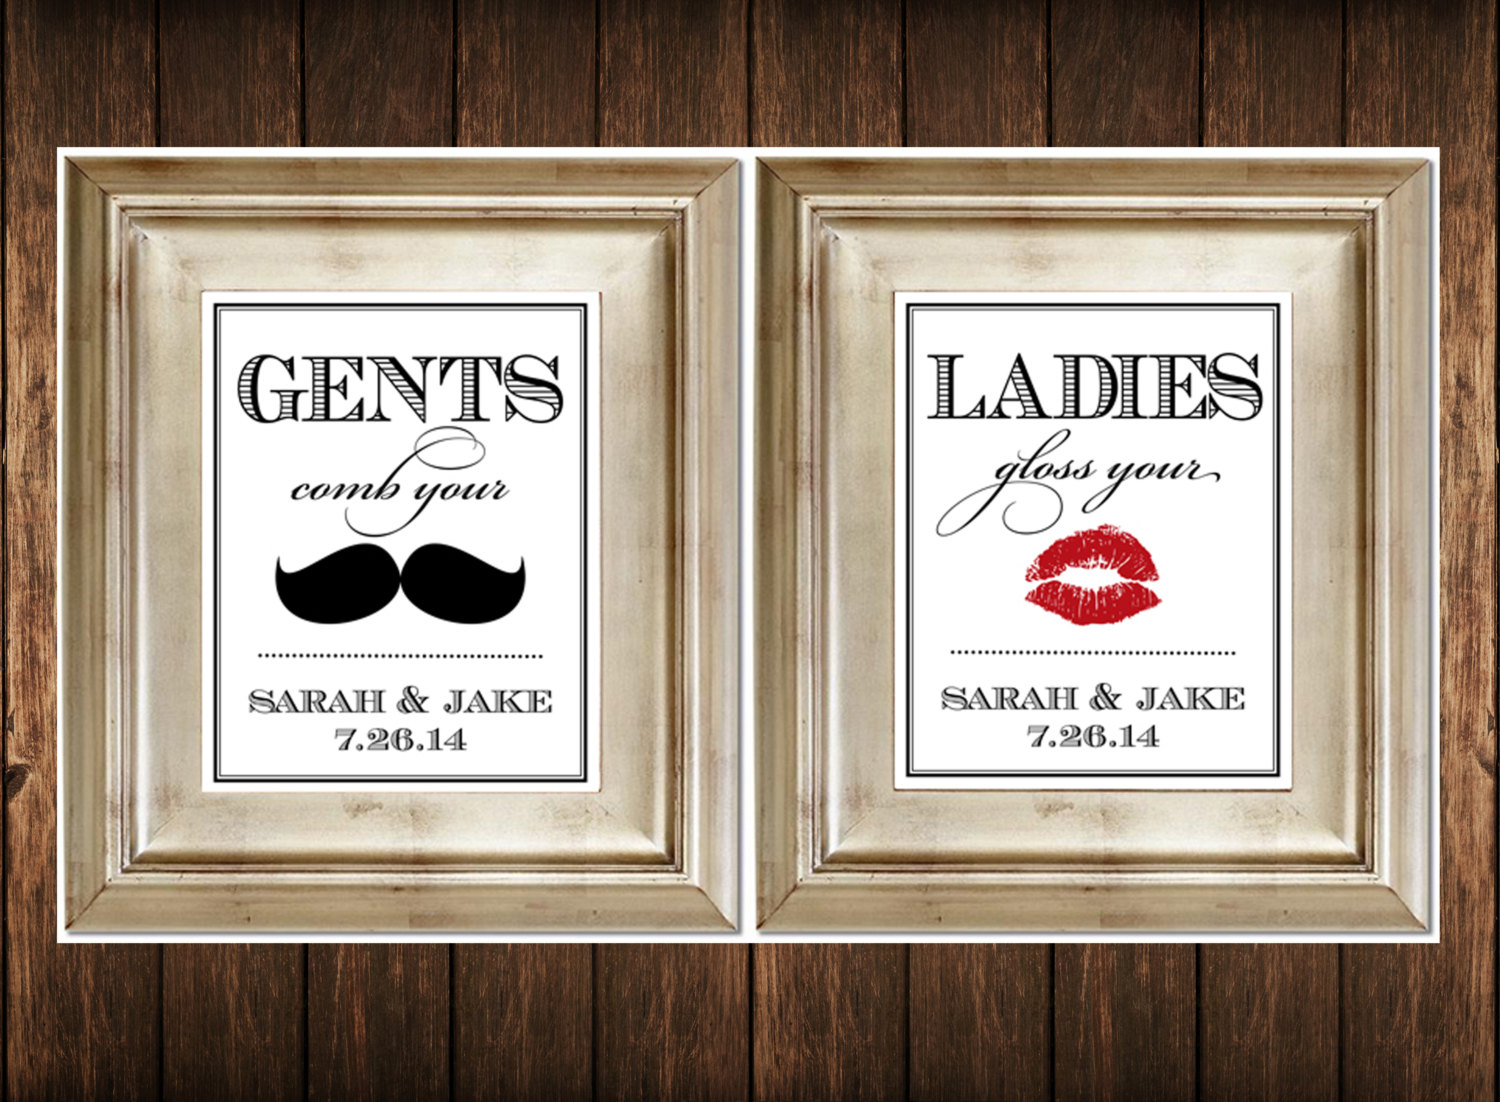 signs, restroom signs, creative signs, creative washroom signs